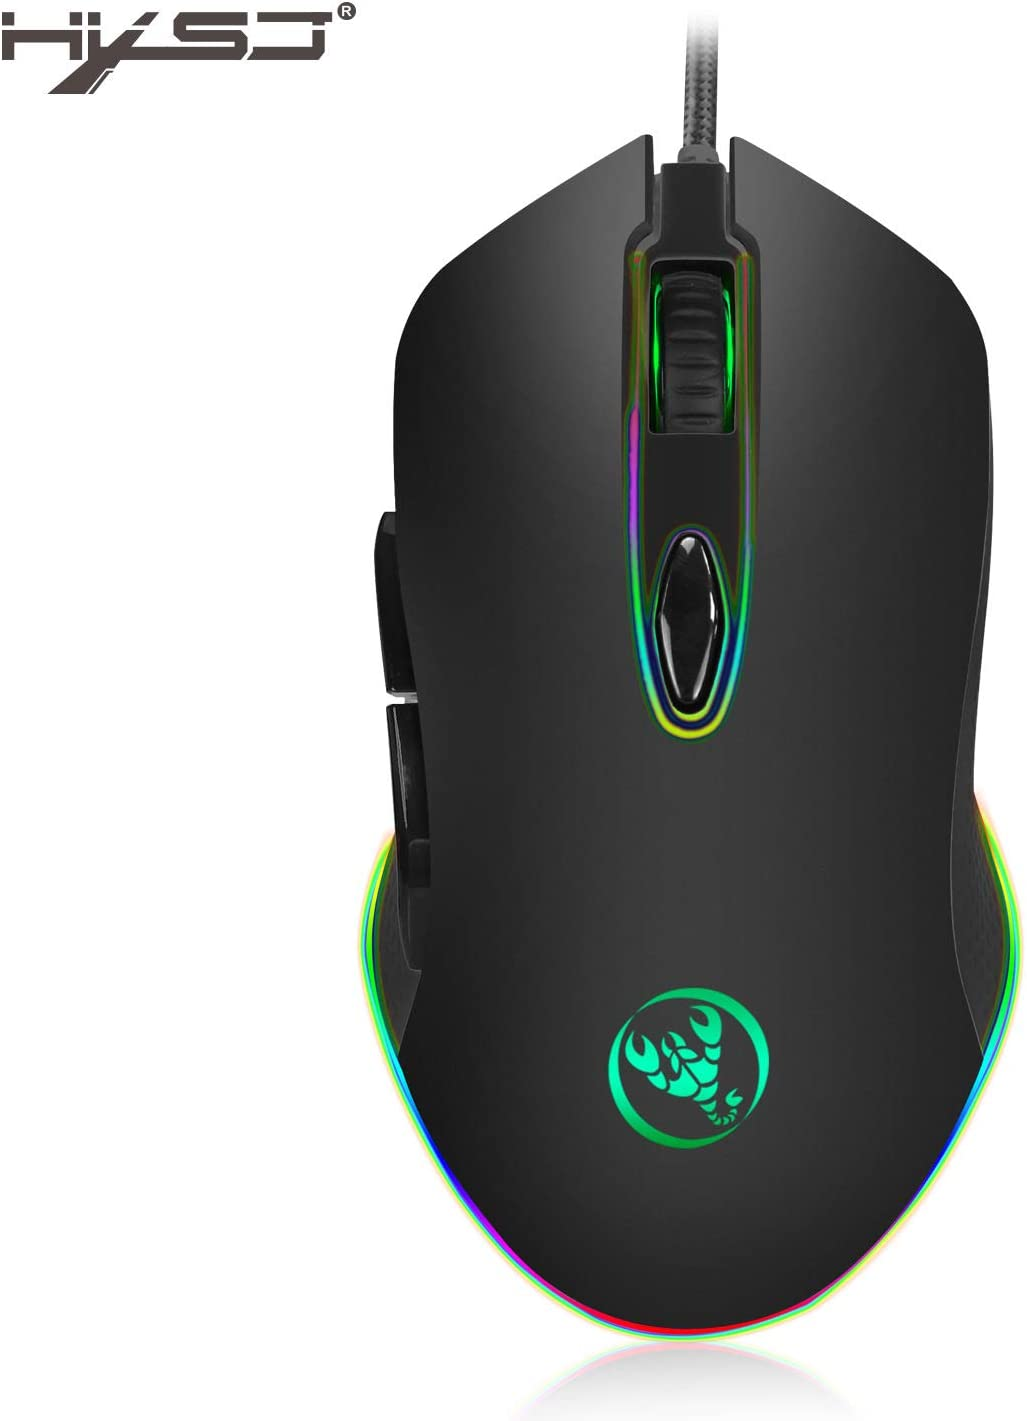 Alician HXSJ S500 Gaming Mouse USB Wired Mouse 6 Buttons 200-4800DPI Optical USB Wired Desktop Mouse RGB Backlit